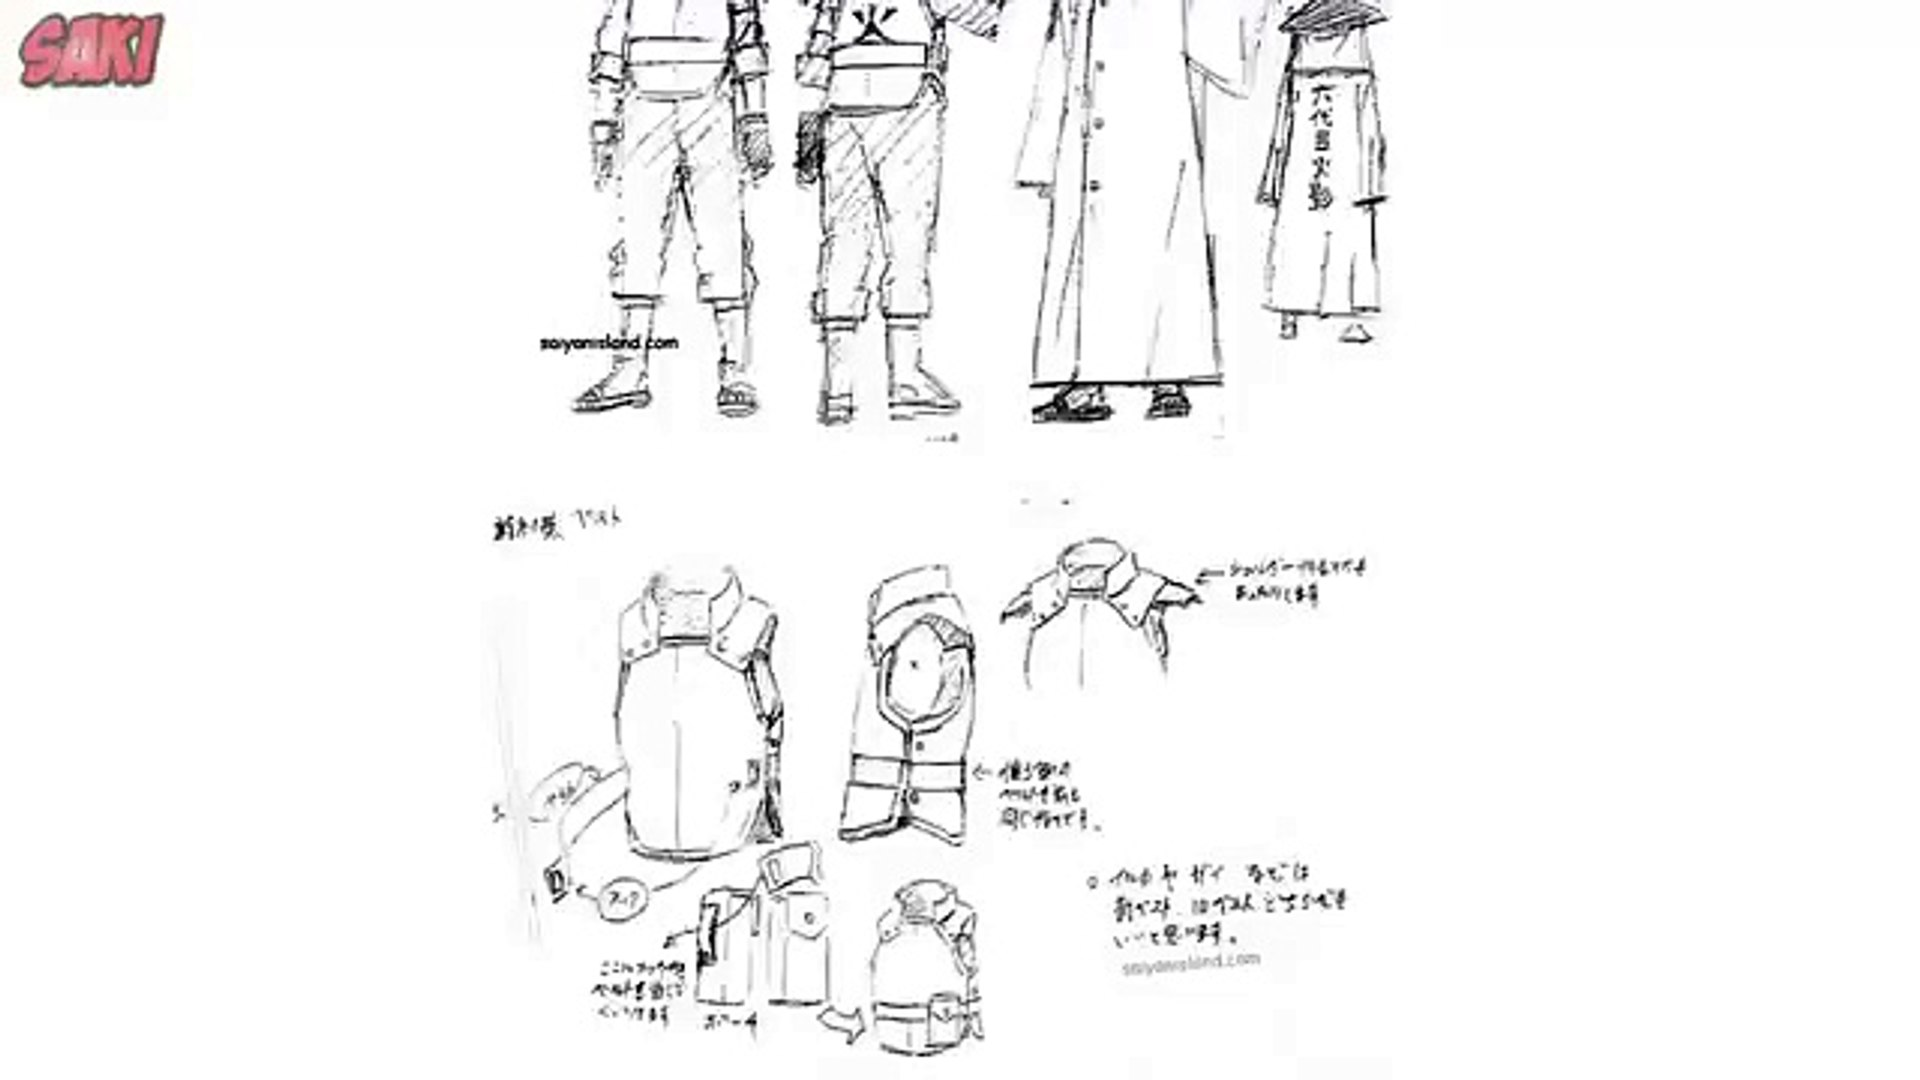 The Last Naruto The Movie Sasuke And Kakashi Full Body Sketches ザラストナルト